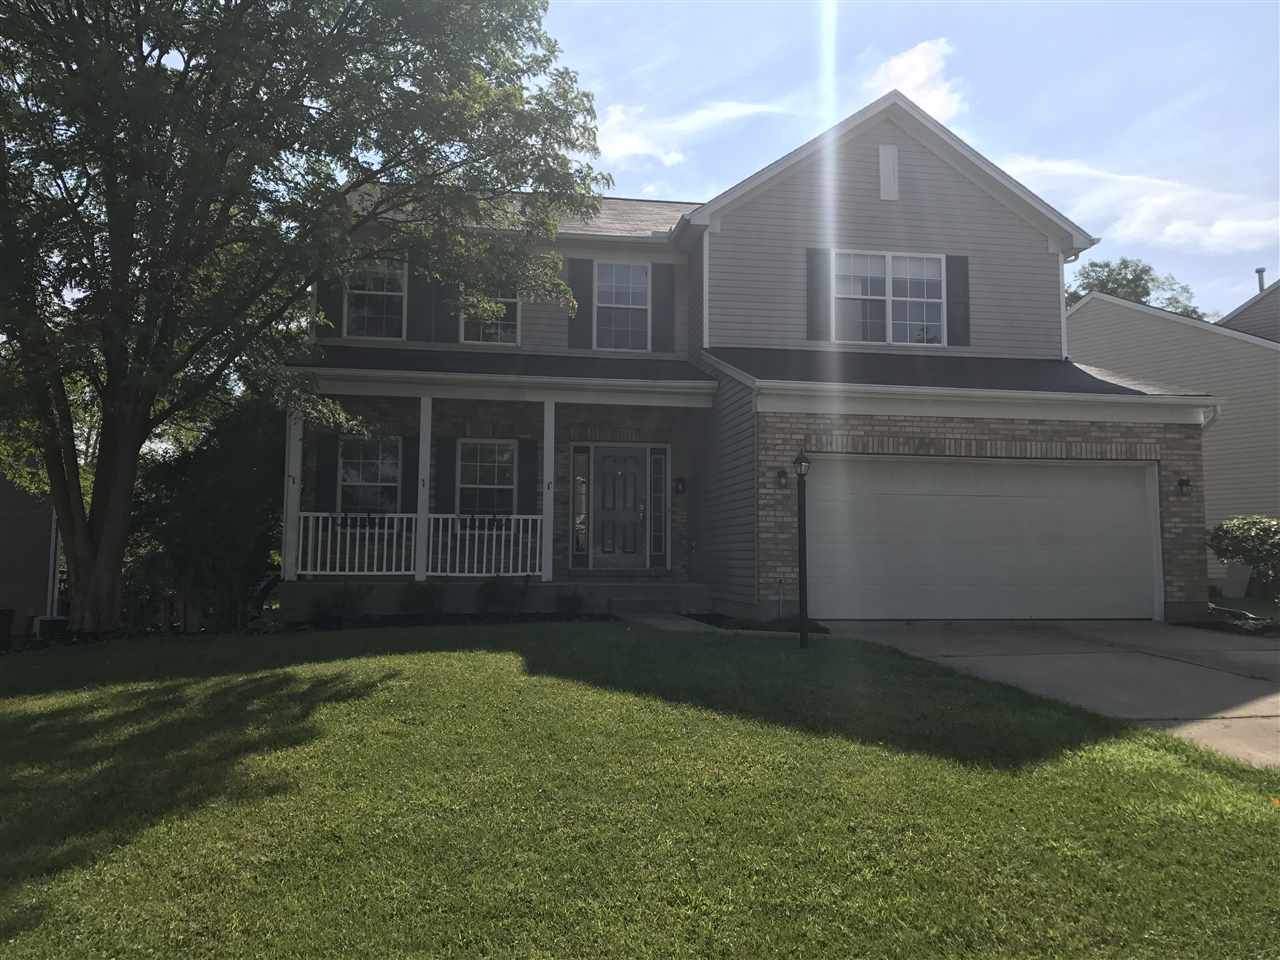 Photo 1 for 1272 Lancashire Dr Union, KY 41091